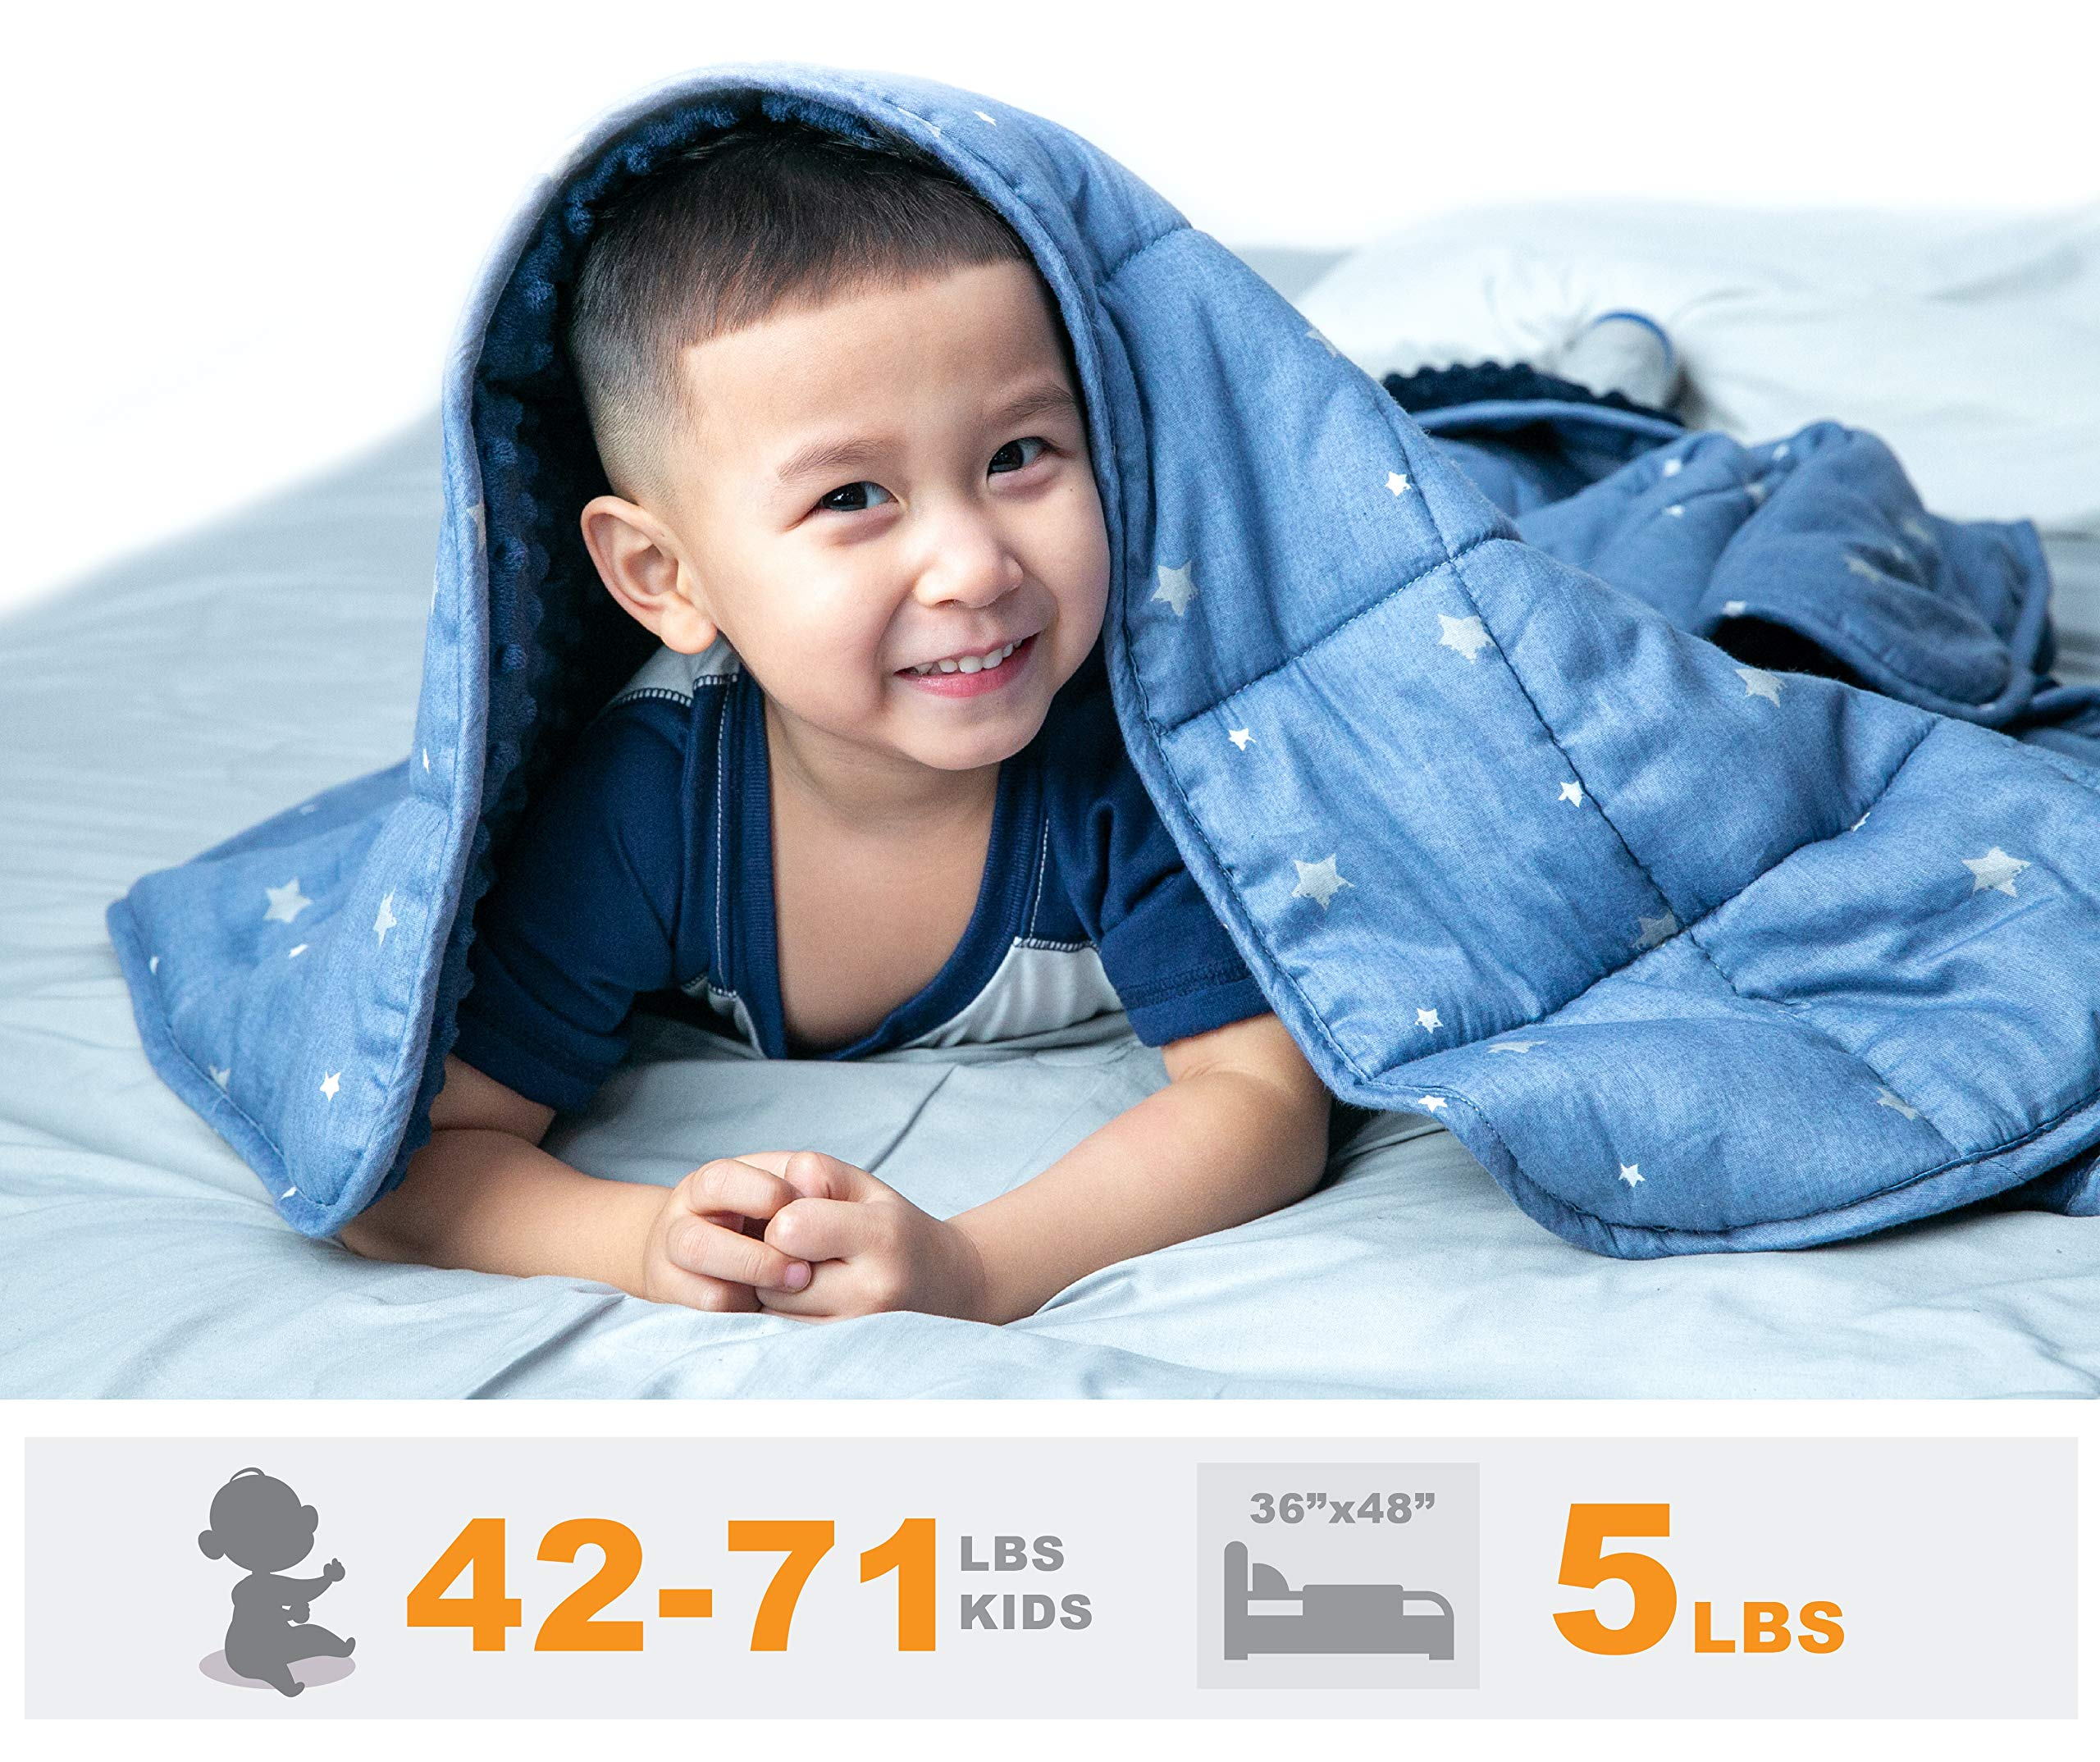 Portable Pillow Throw Two Sided Premium Breathable Cotton And Warm Minky Fabric With Glass Beads| Adult Lap Blanket Kids Weighted Travel Blanket| Children Between 40-70 lbs 36x48 I 5 LBS Heavy